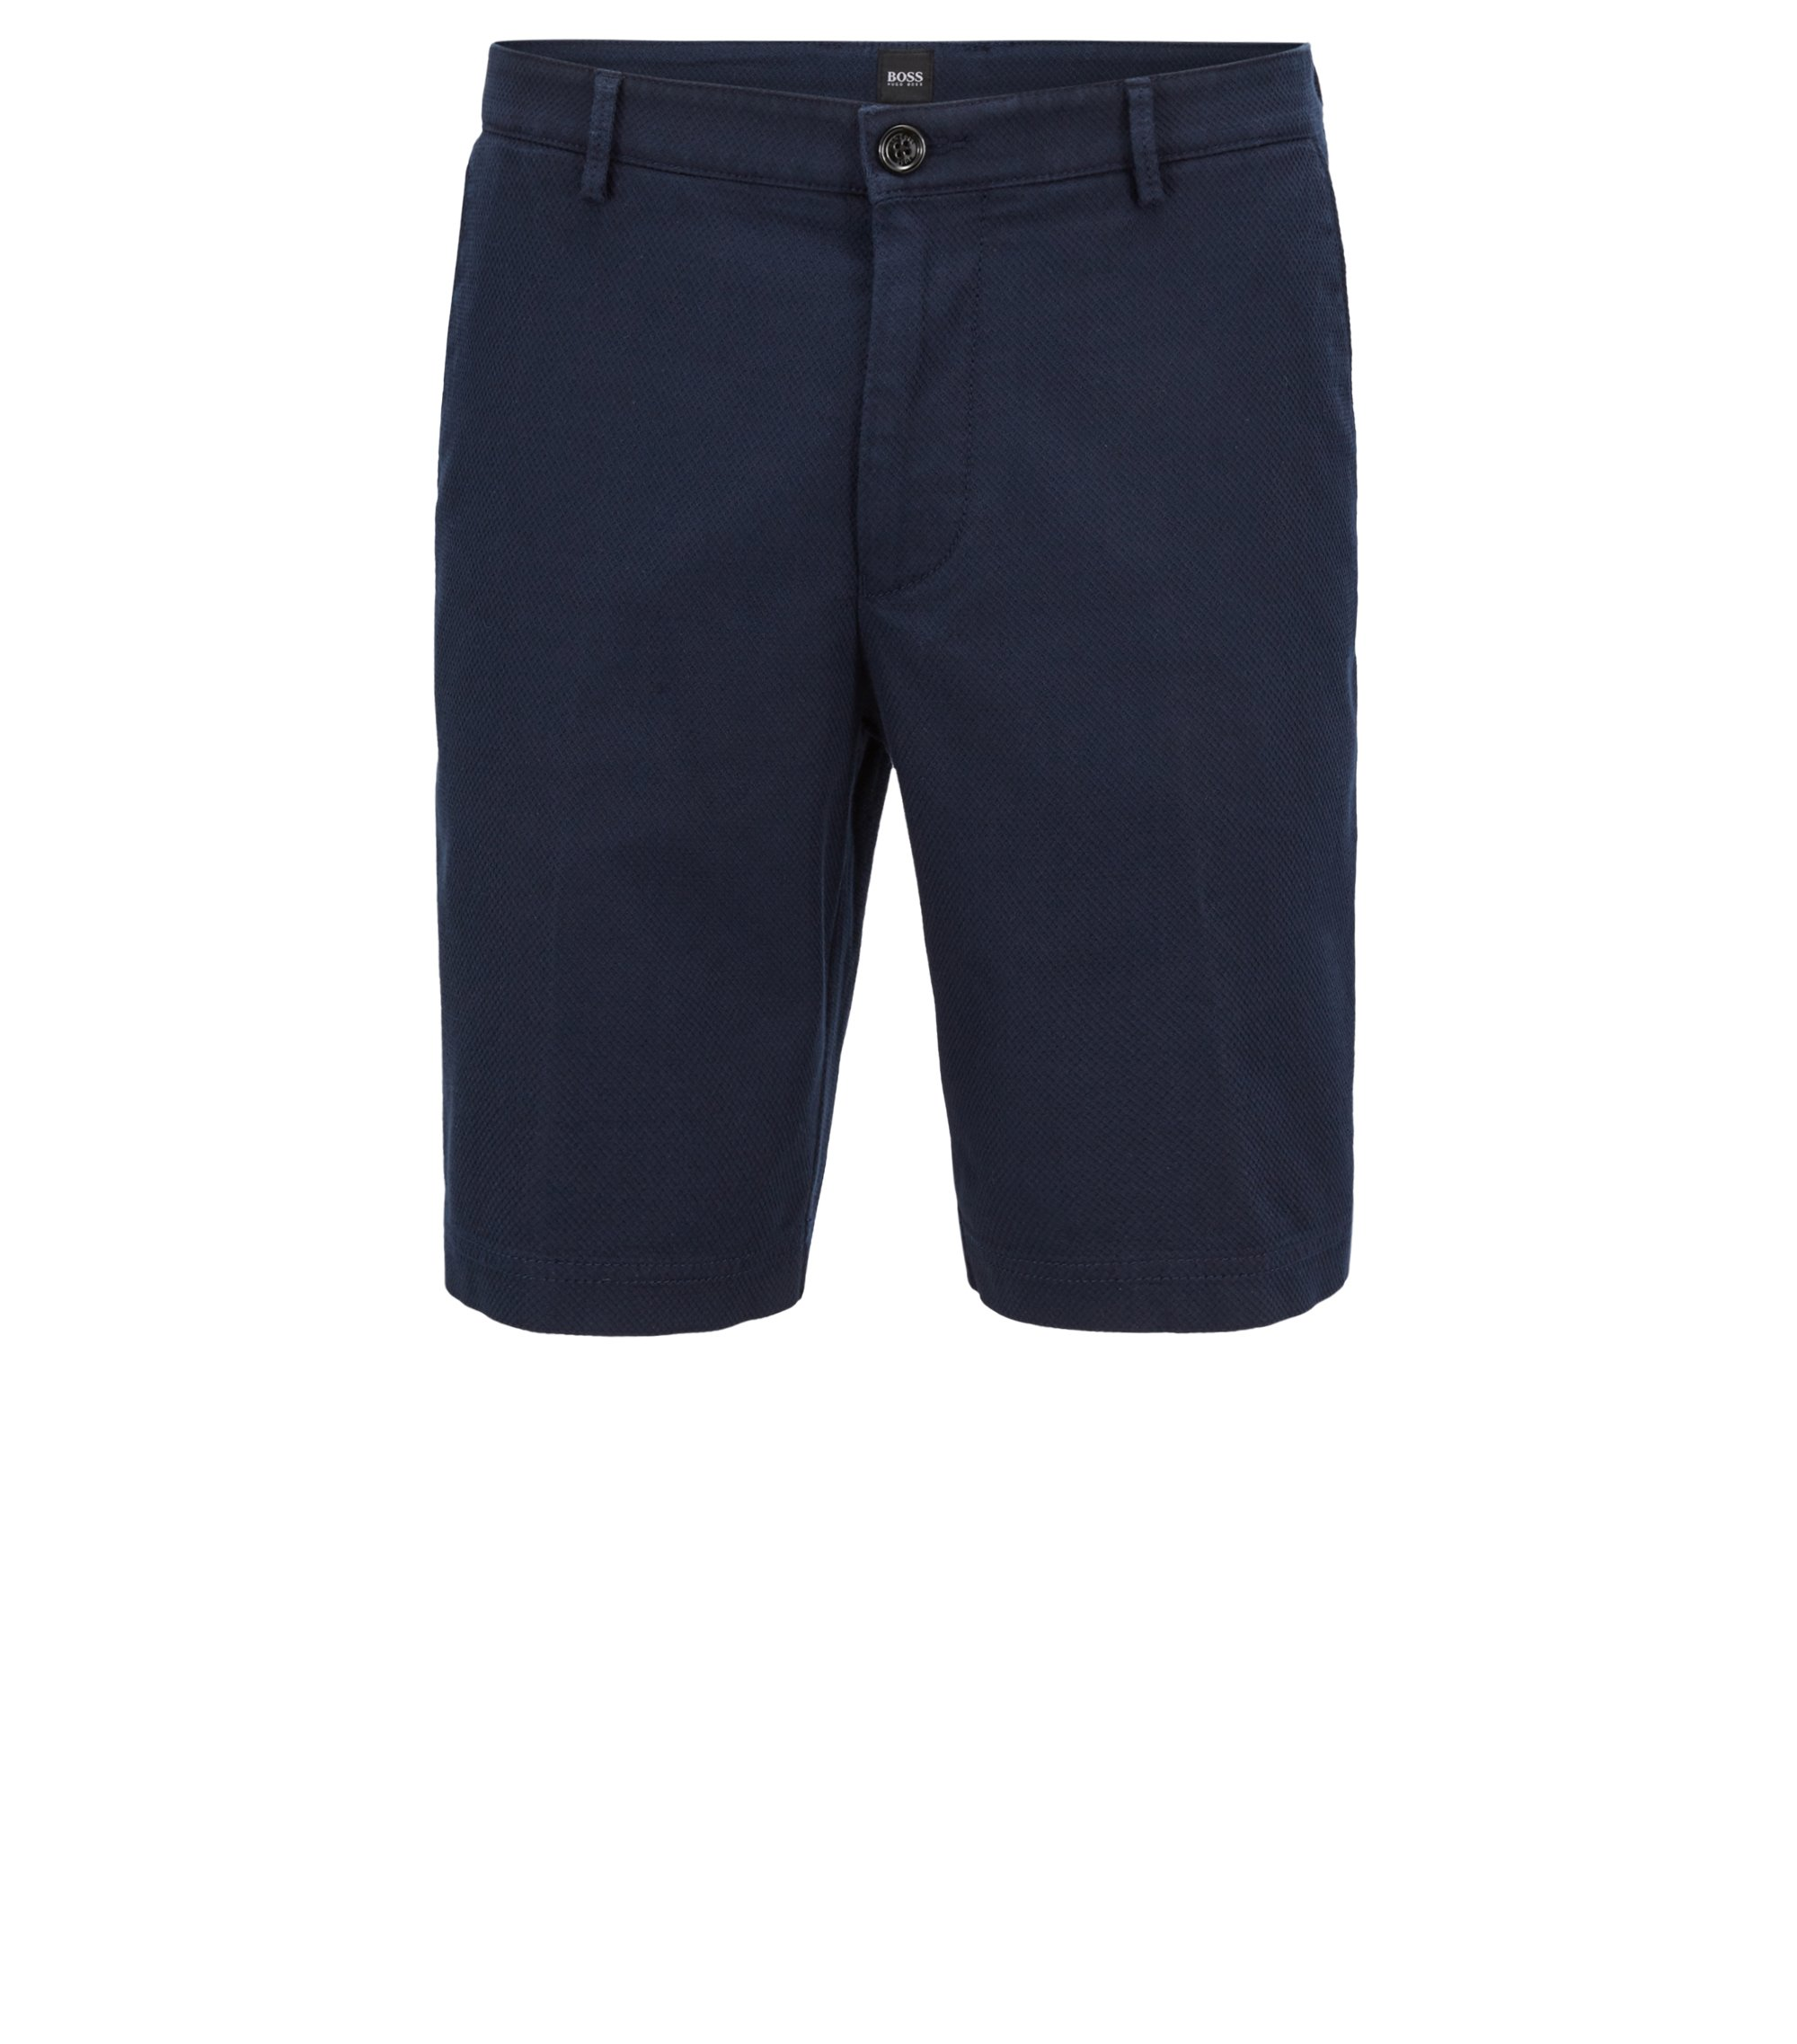 Short Regular Fit en coton stretch structuré, Bleu foncé